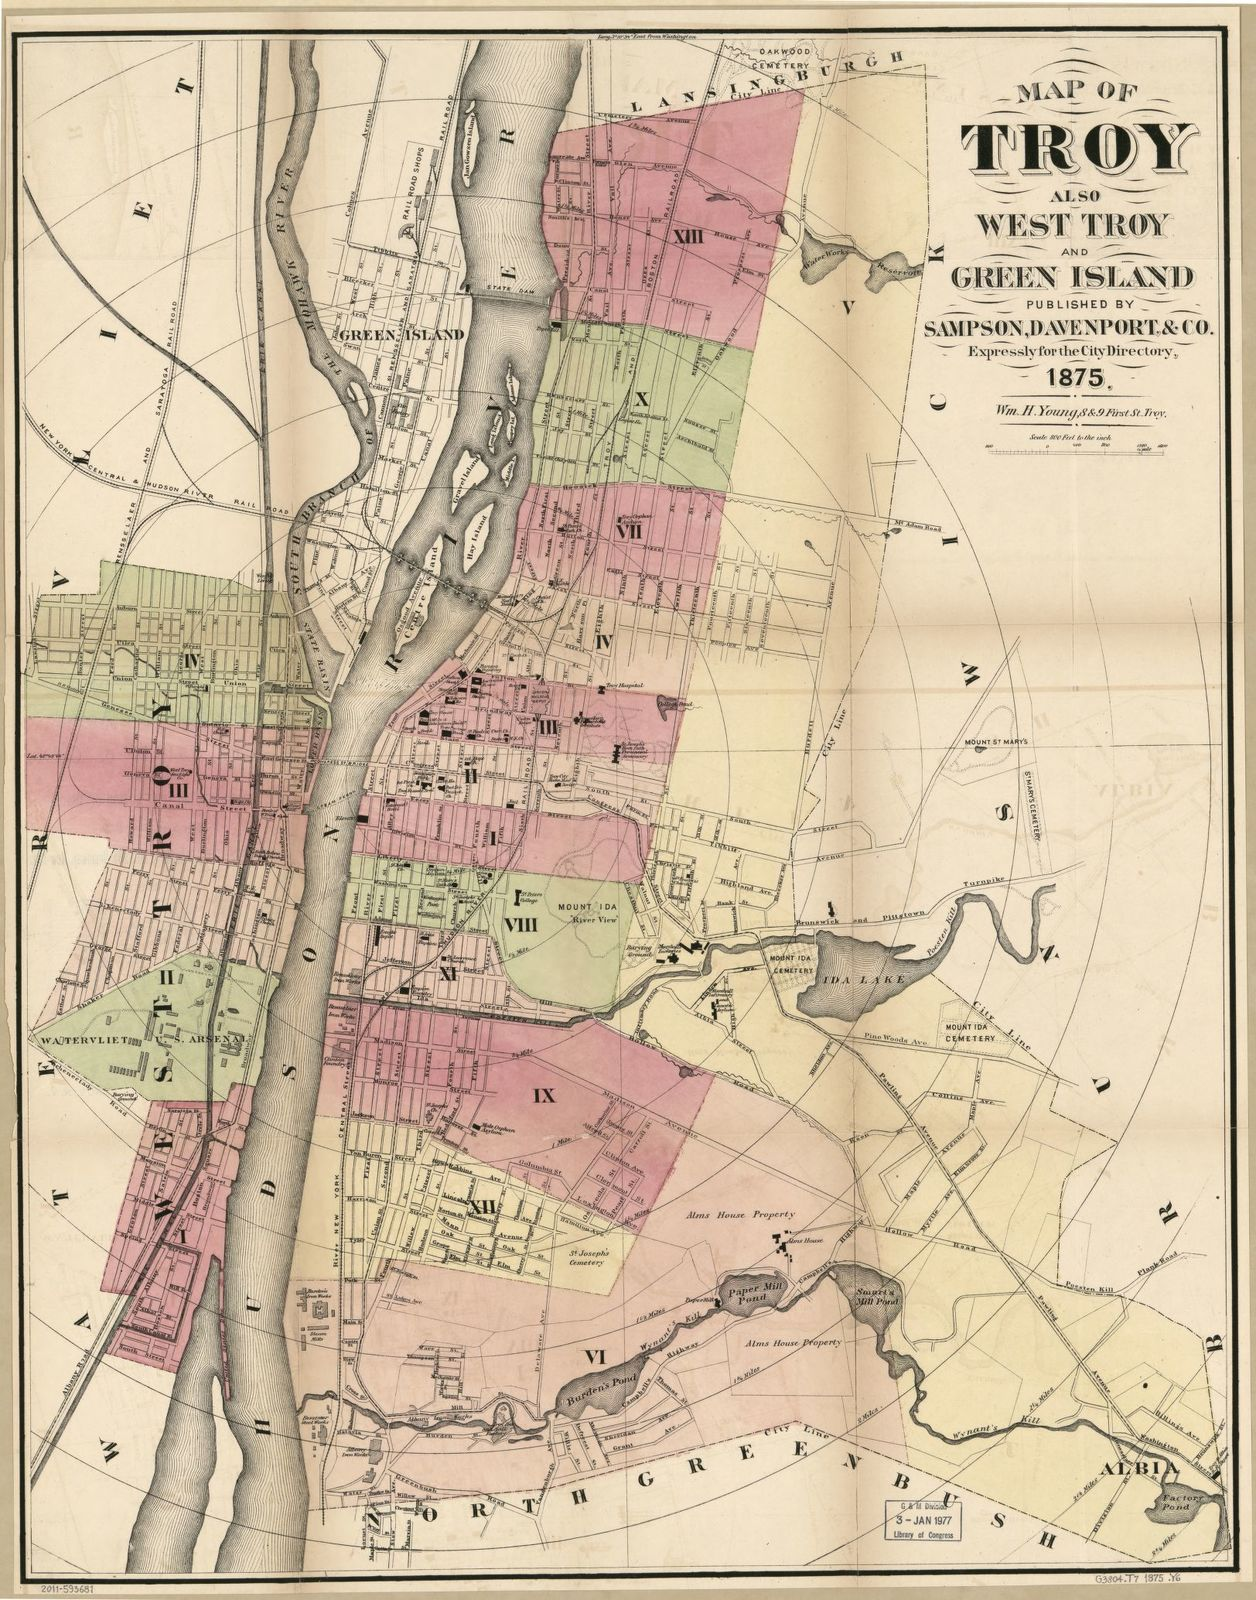 Map of Troy, also West Troy, and Green Island /